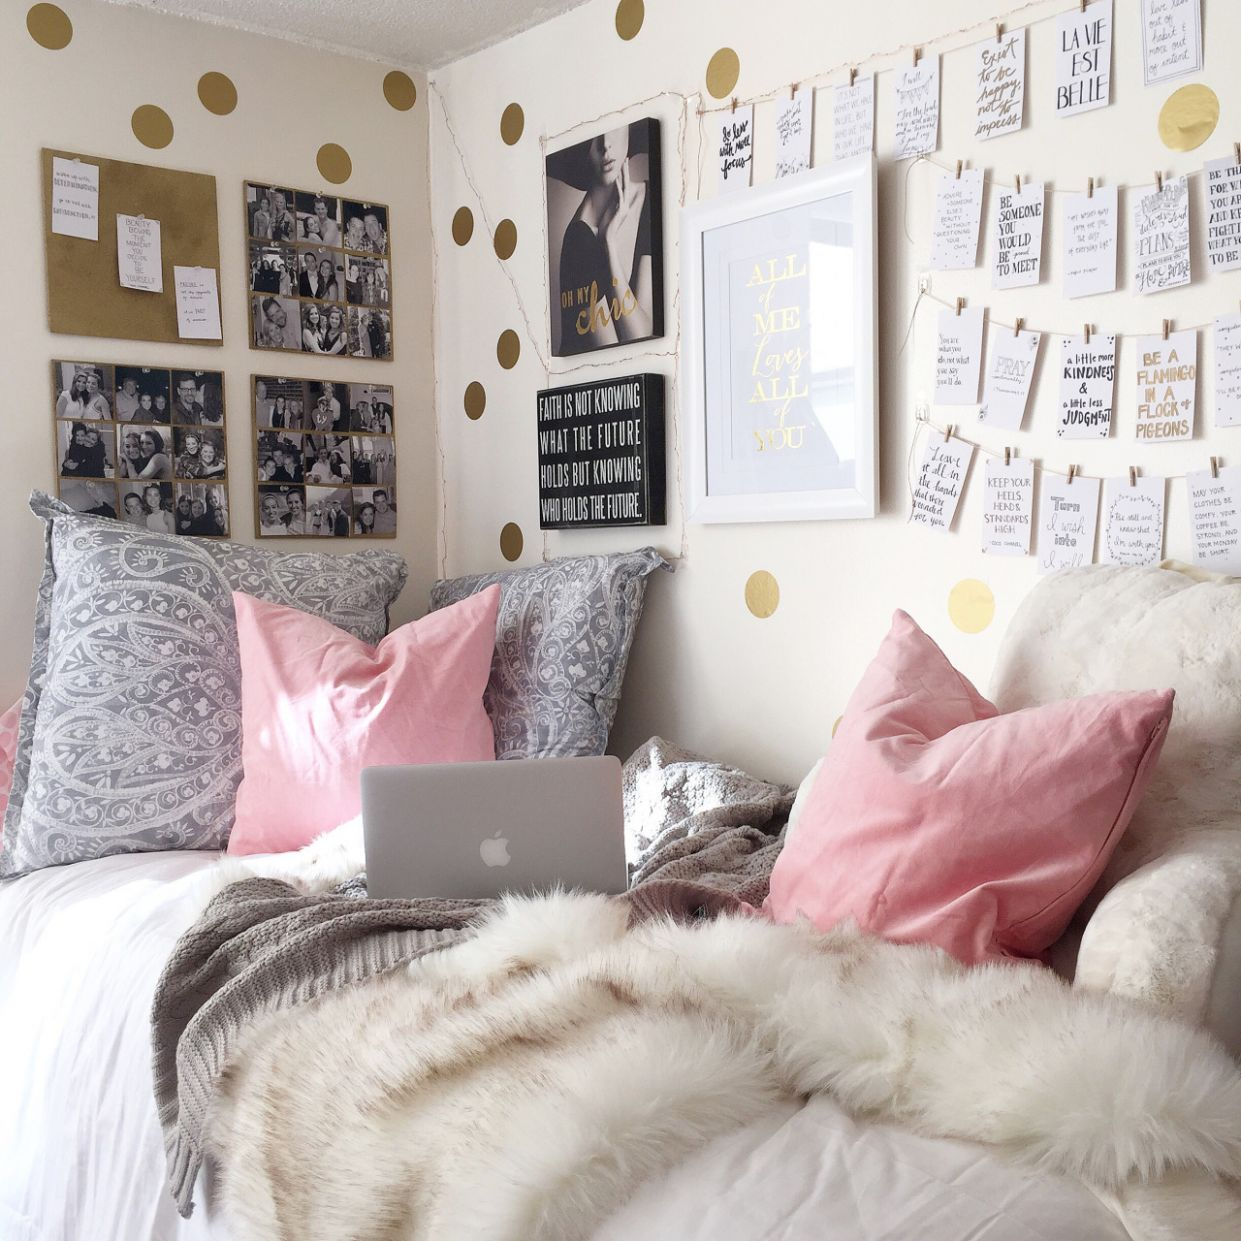 Inspiration from 9 Super-Stylish Real Dorm Rooms | Apartment Therapy - dorm room design and decor location